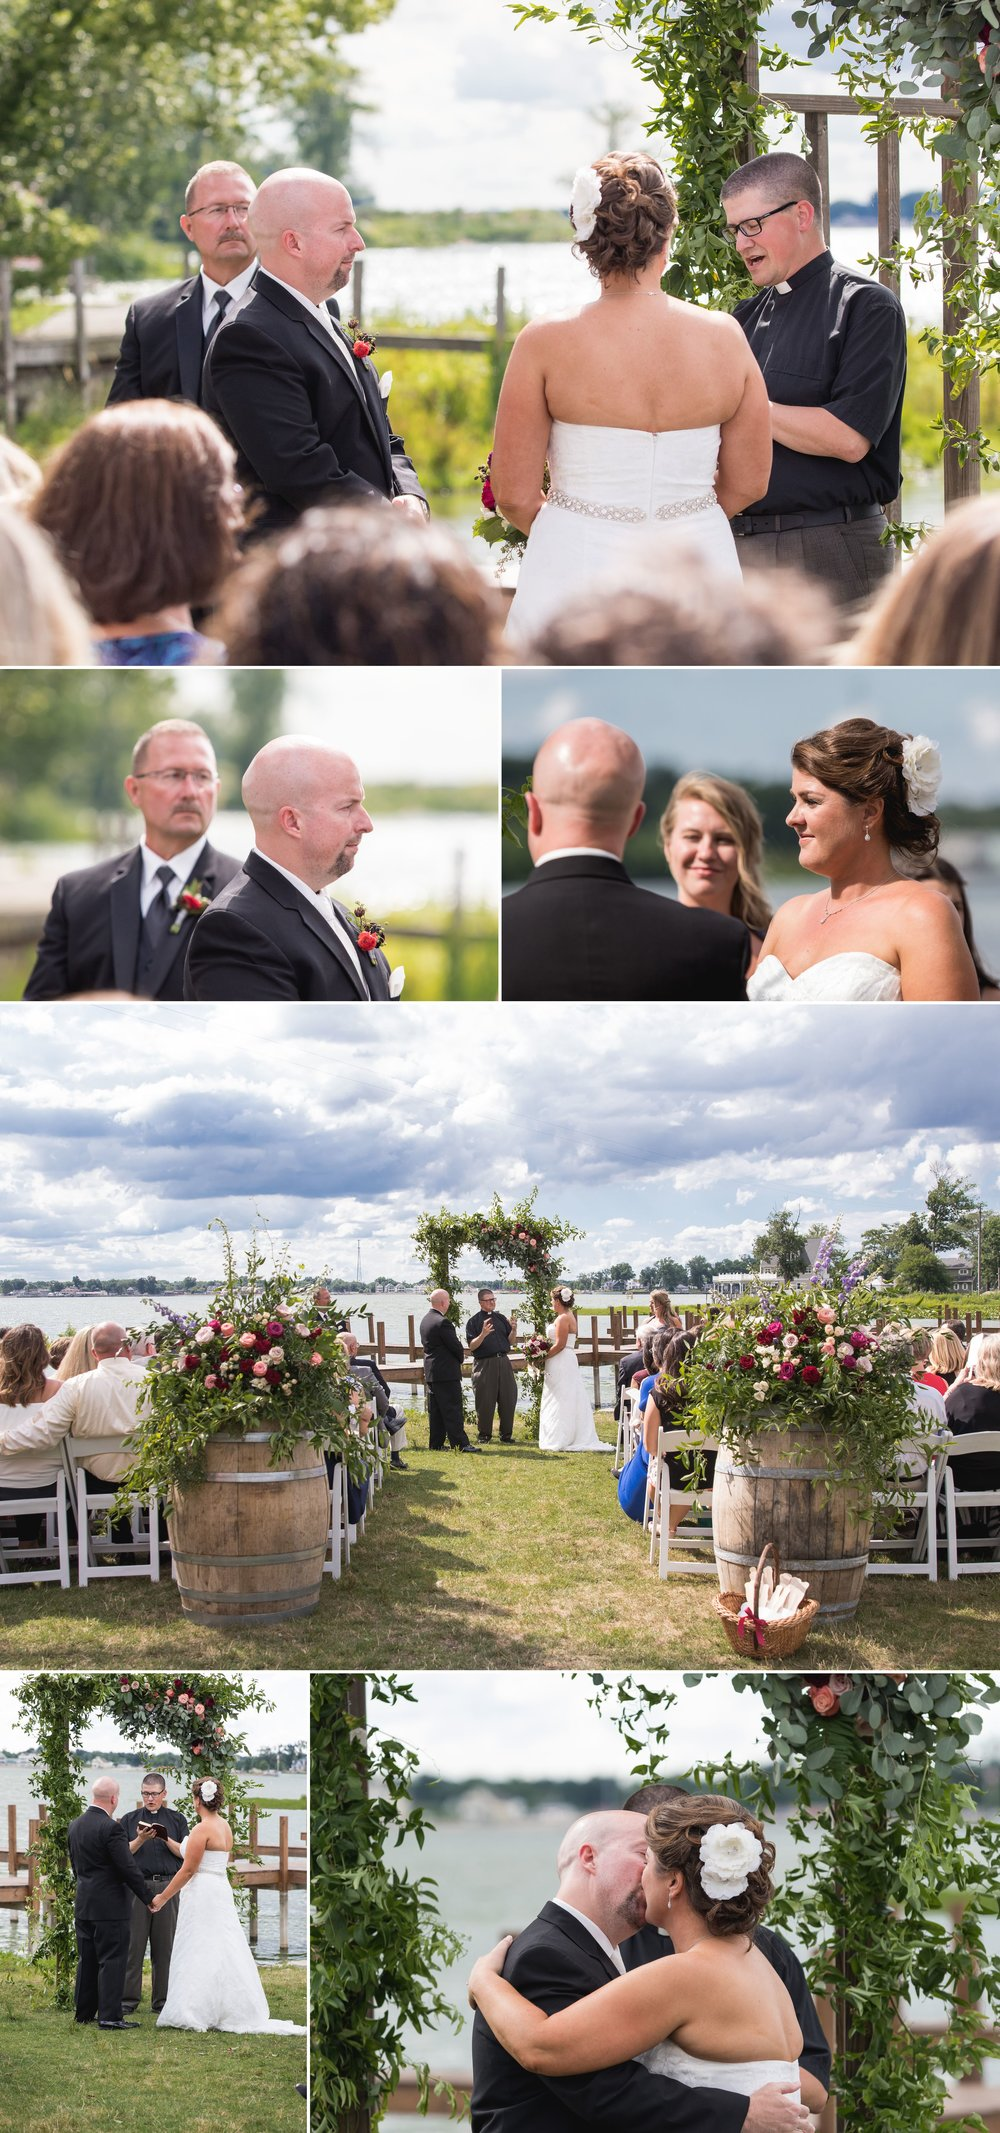 013-Buckeye-lake-winery-wedding-ceremony-columbus-ohio-wedding-photography-muschlitz-photography-03.JPG